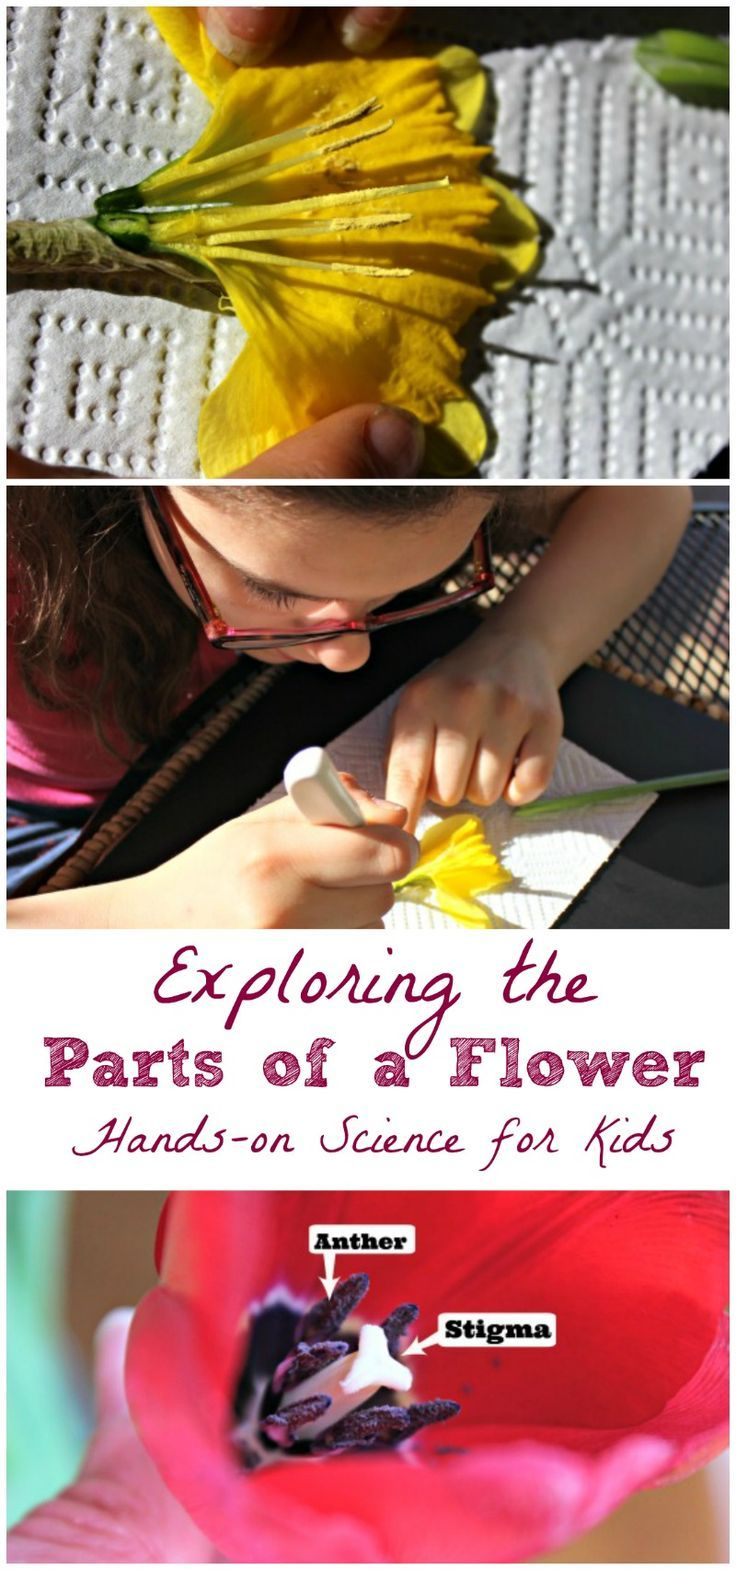 Dissect a flower to learn about all its parts and how pollination works -- awesome hands-on science!